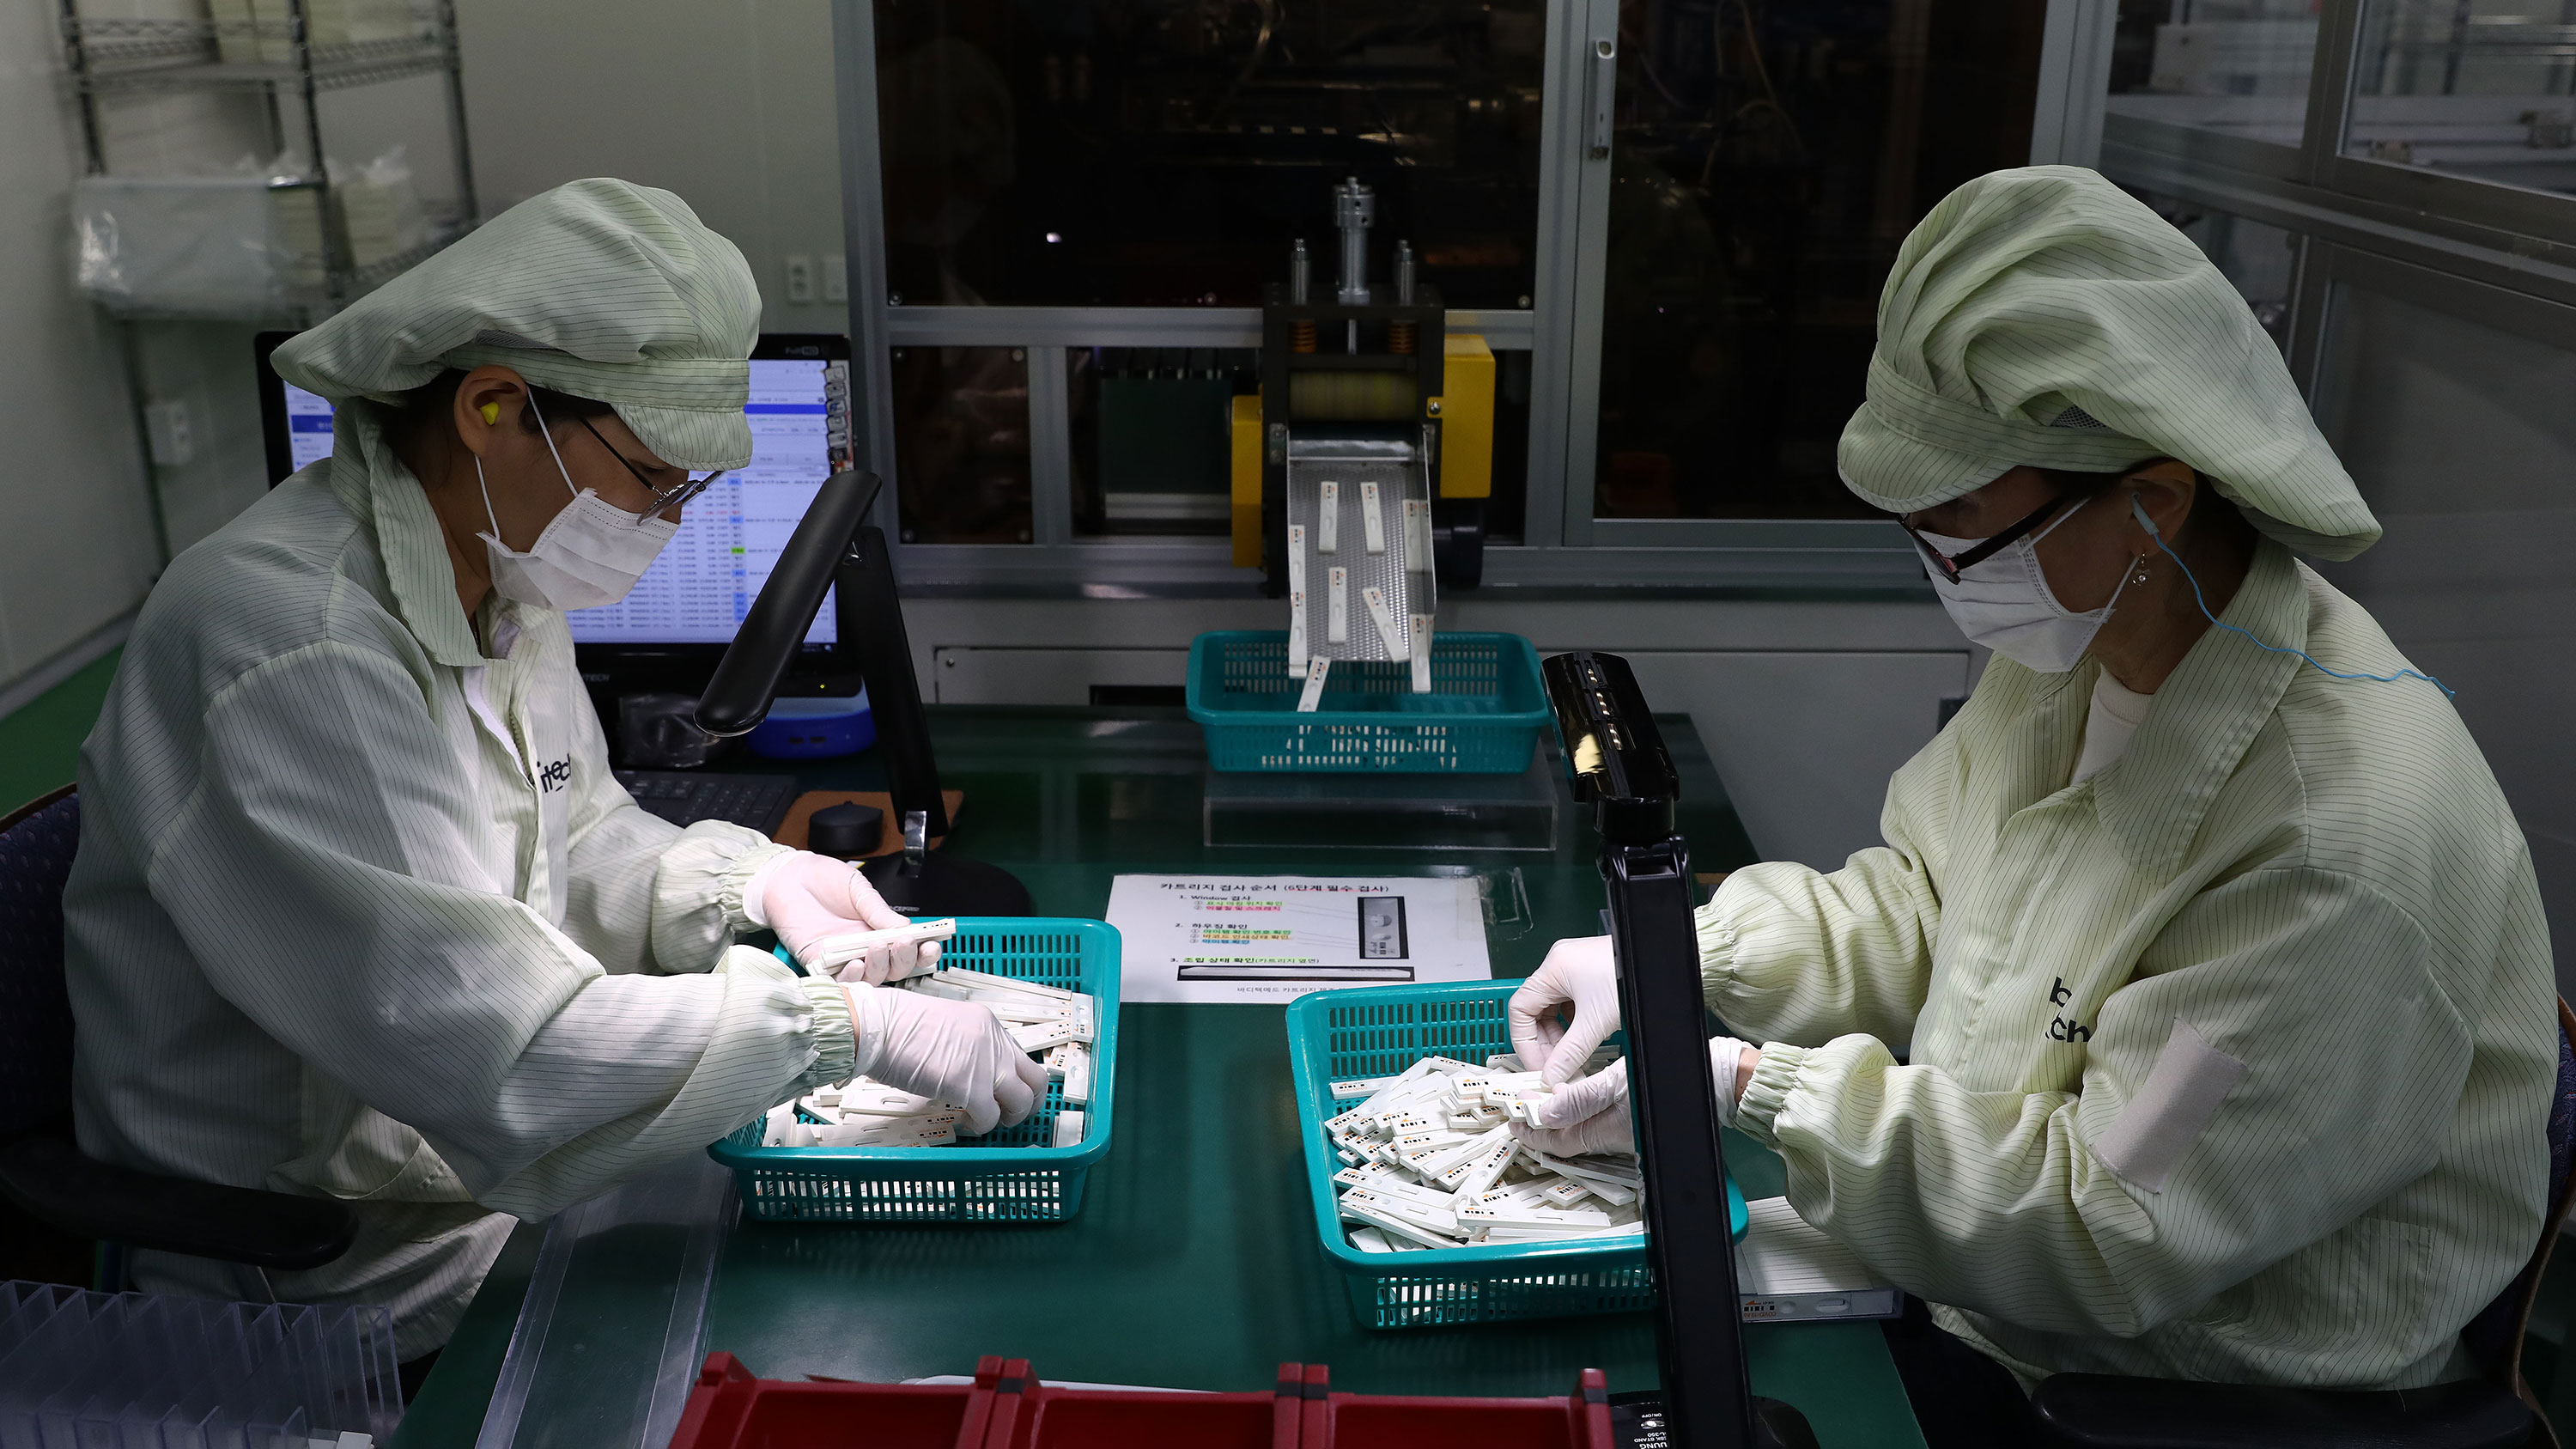 Employees work on the production line of testing kits used in diagnosing the coronavirus at the Boditech Med Inc. headquarters in Chuncheon, South Korea on April 17.